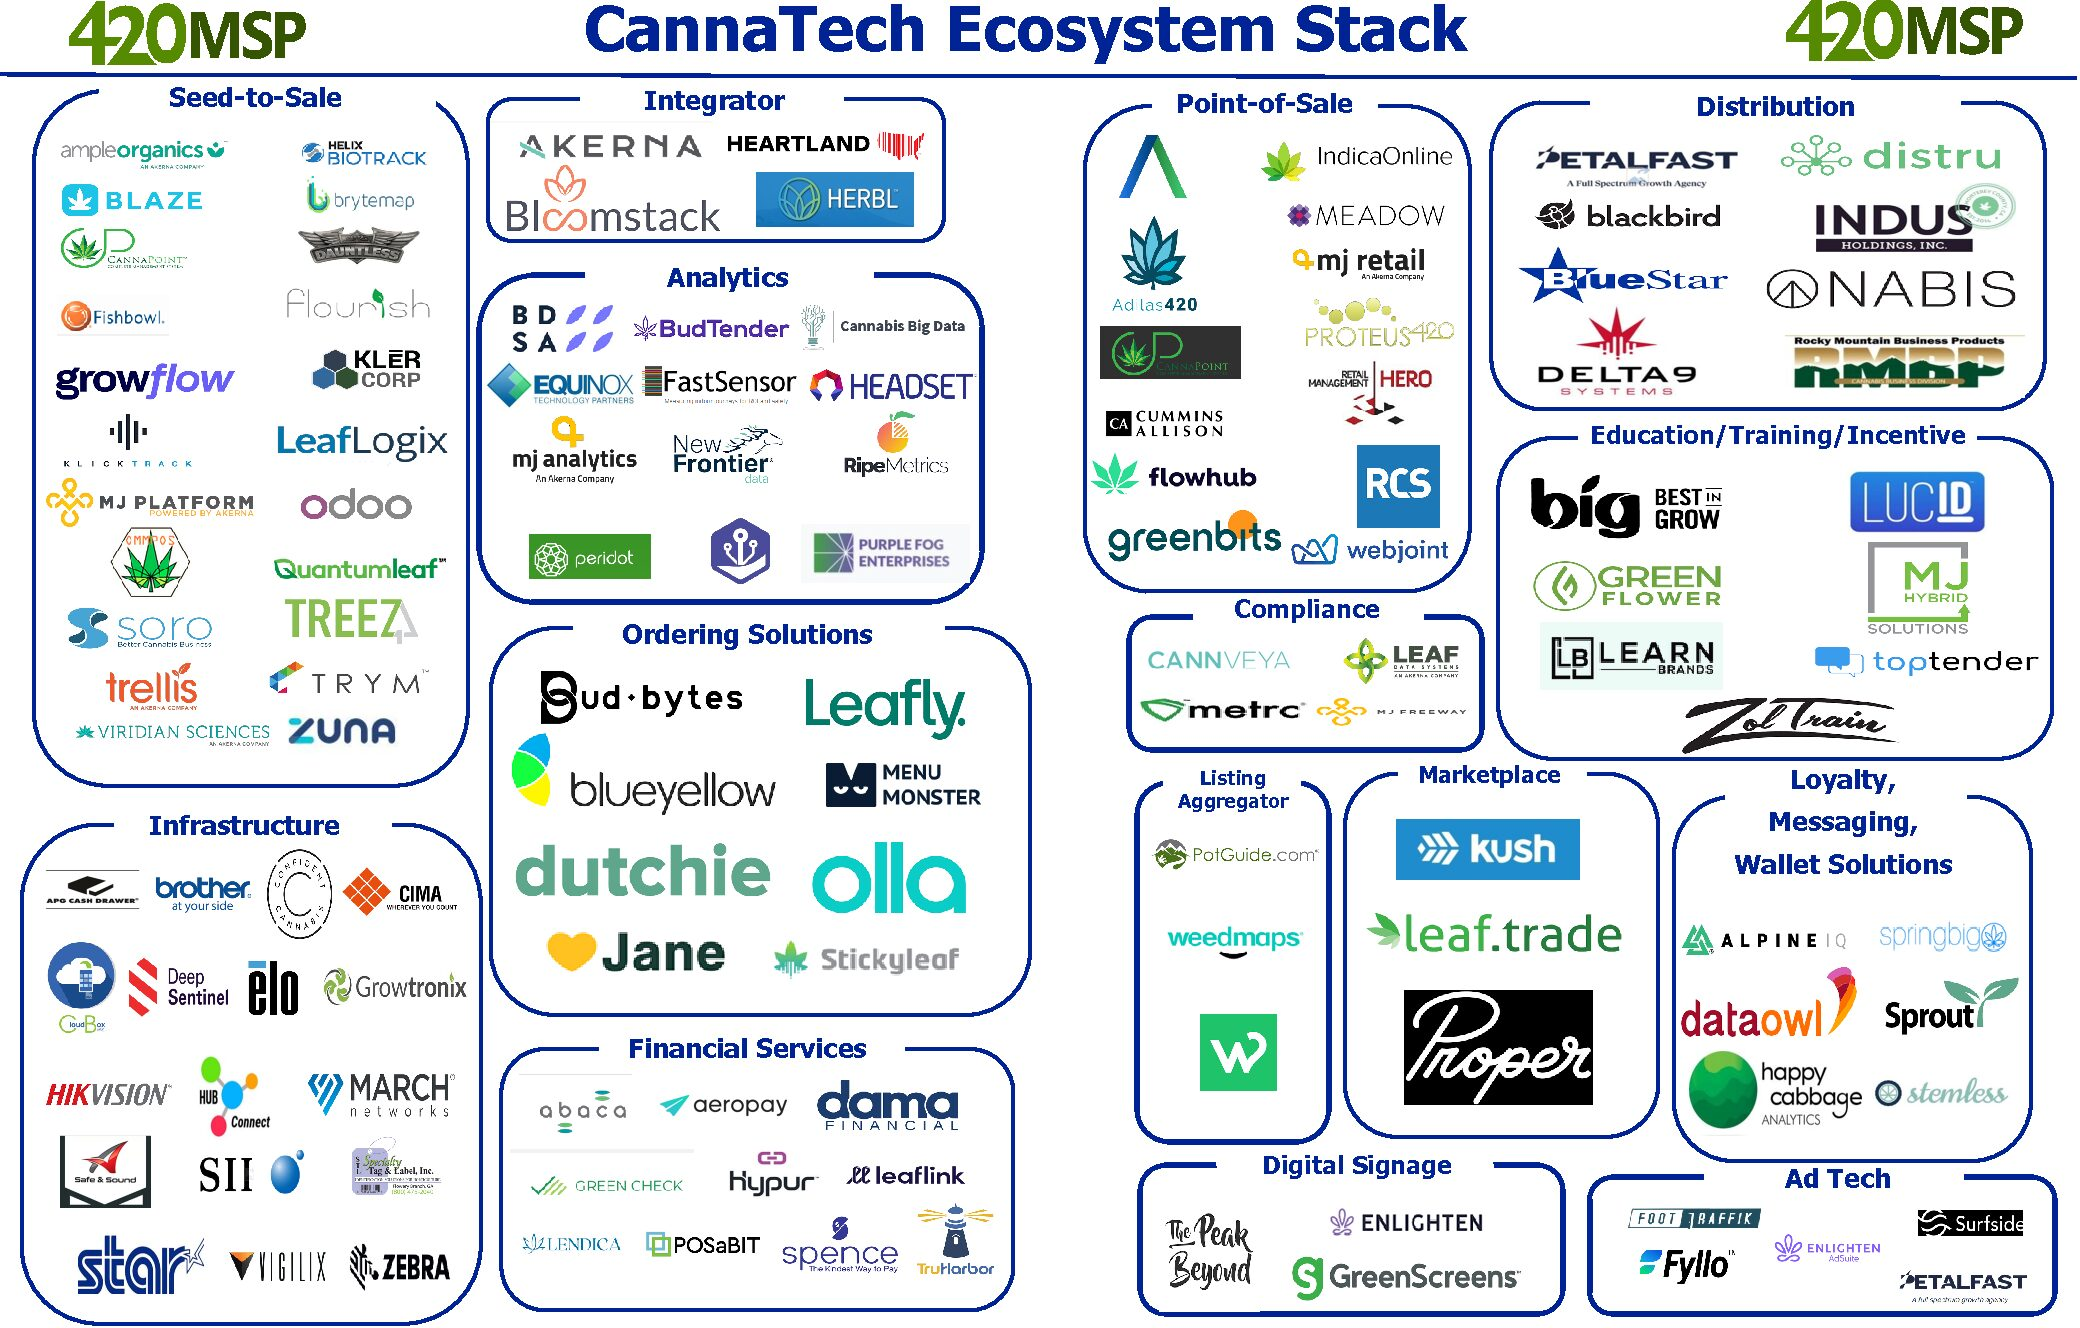 UPDATED 3q2021 CannaTech Ecosystem Stack!